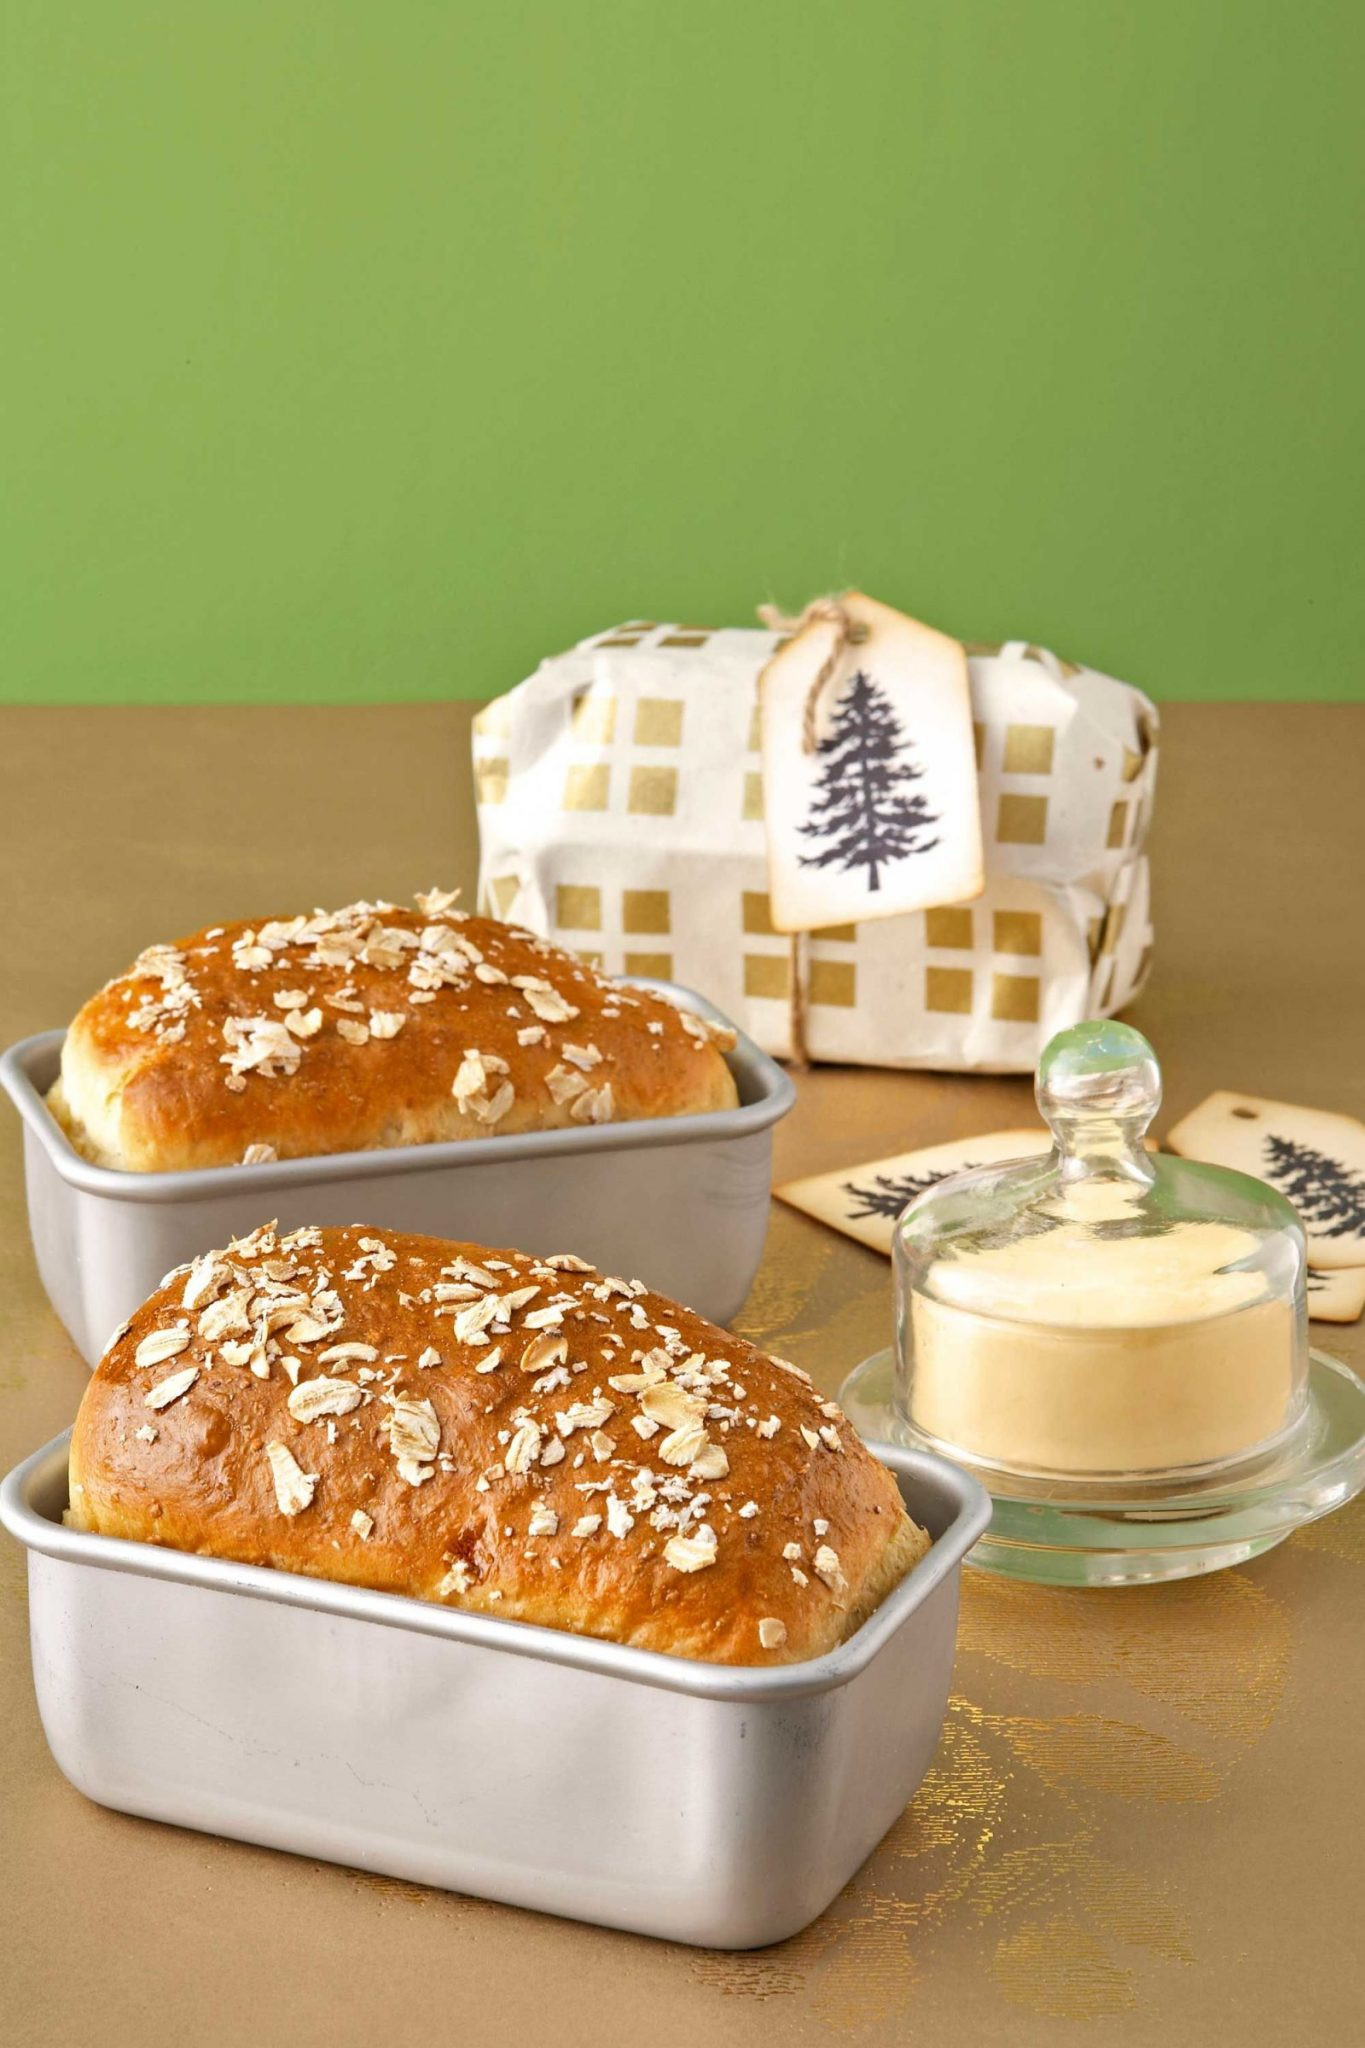 Food Gifts For Christmas  Homemade Holiday Food Gifts 31 Daily